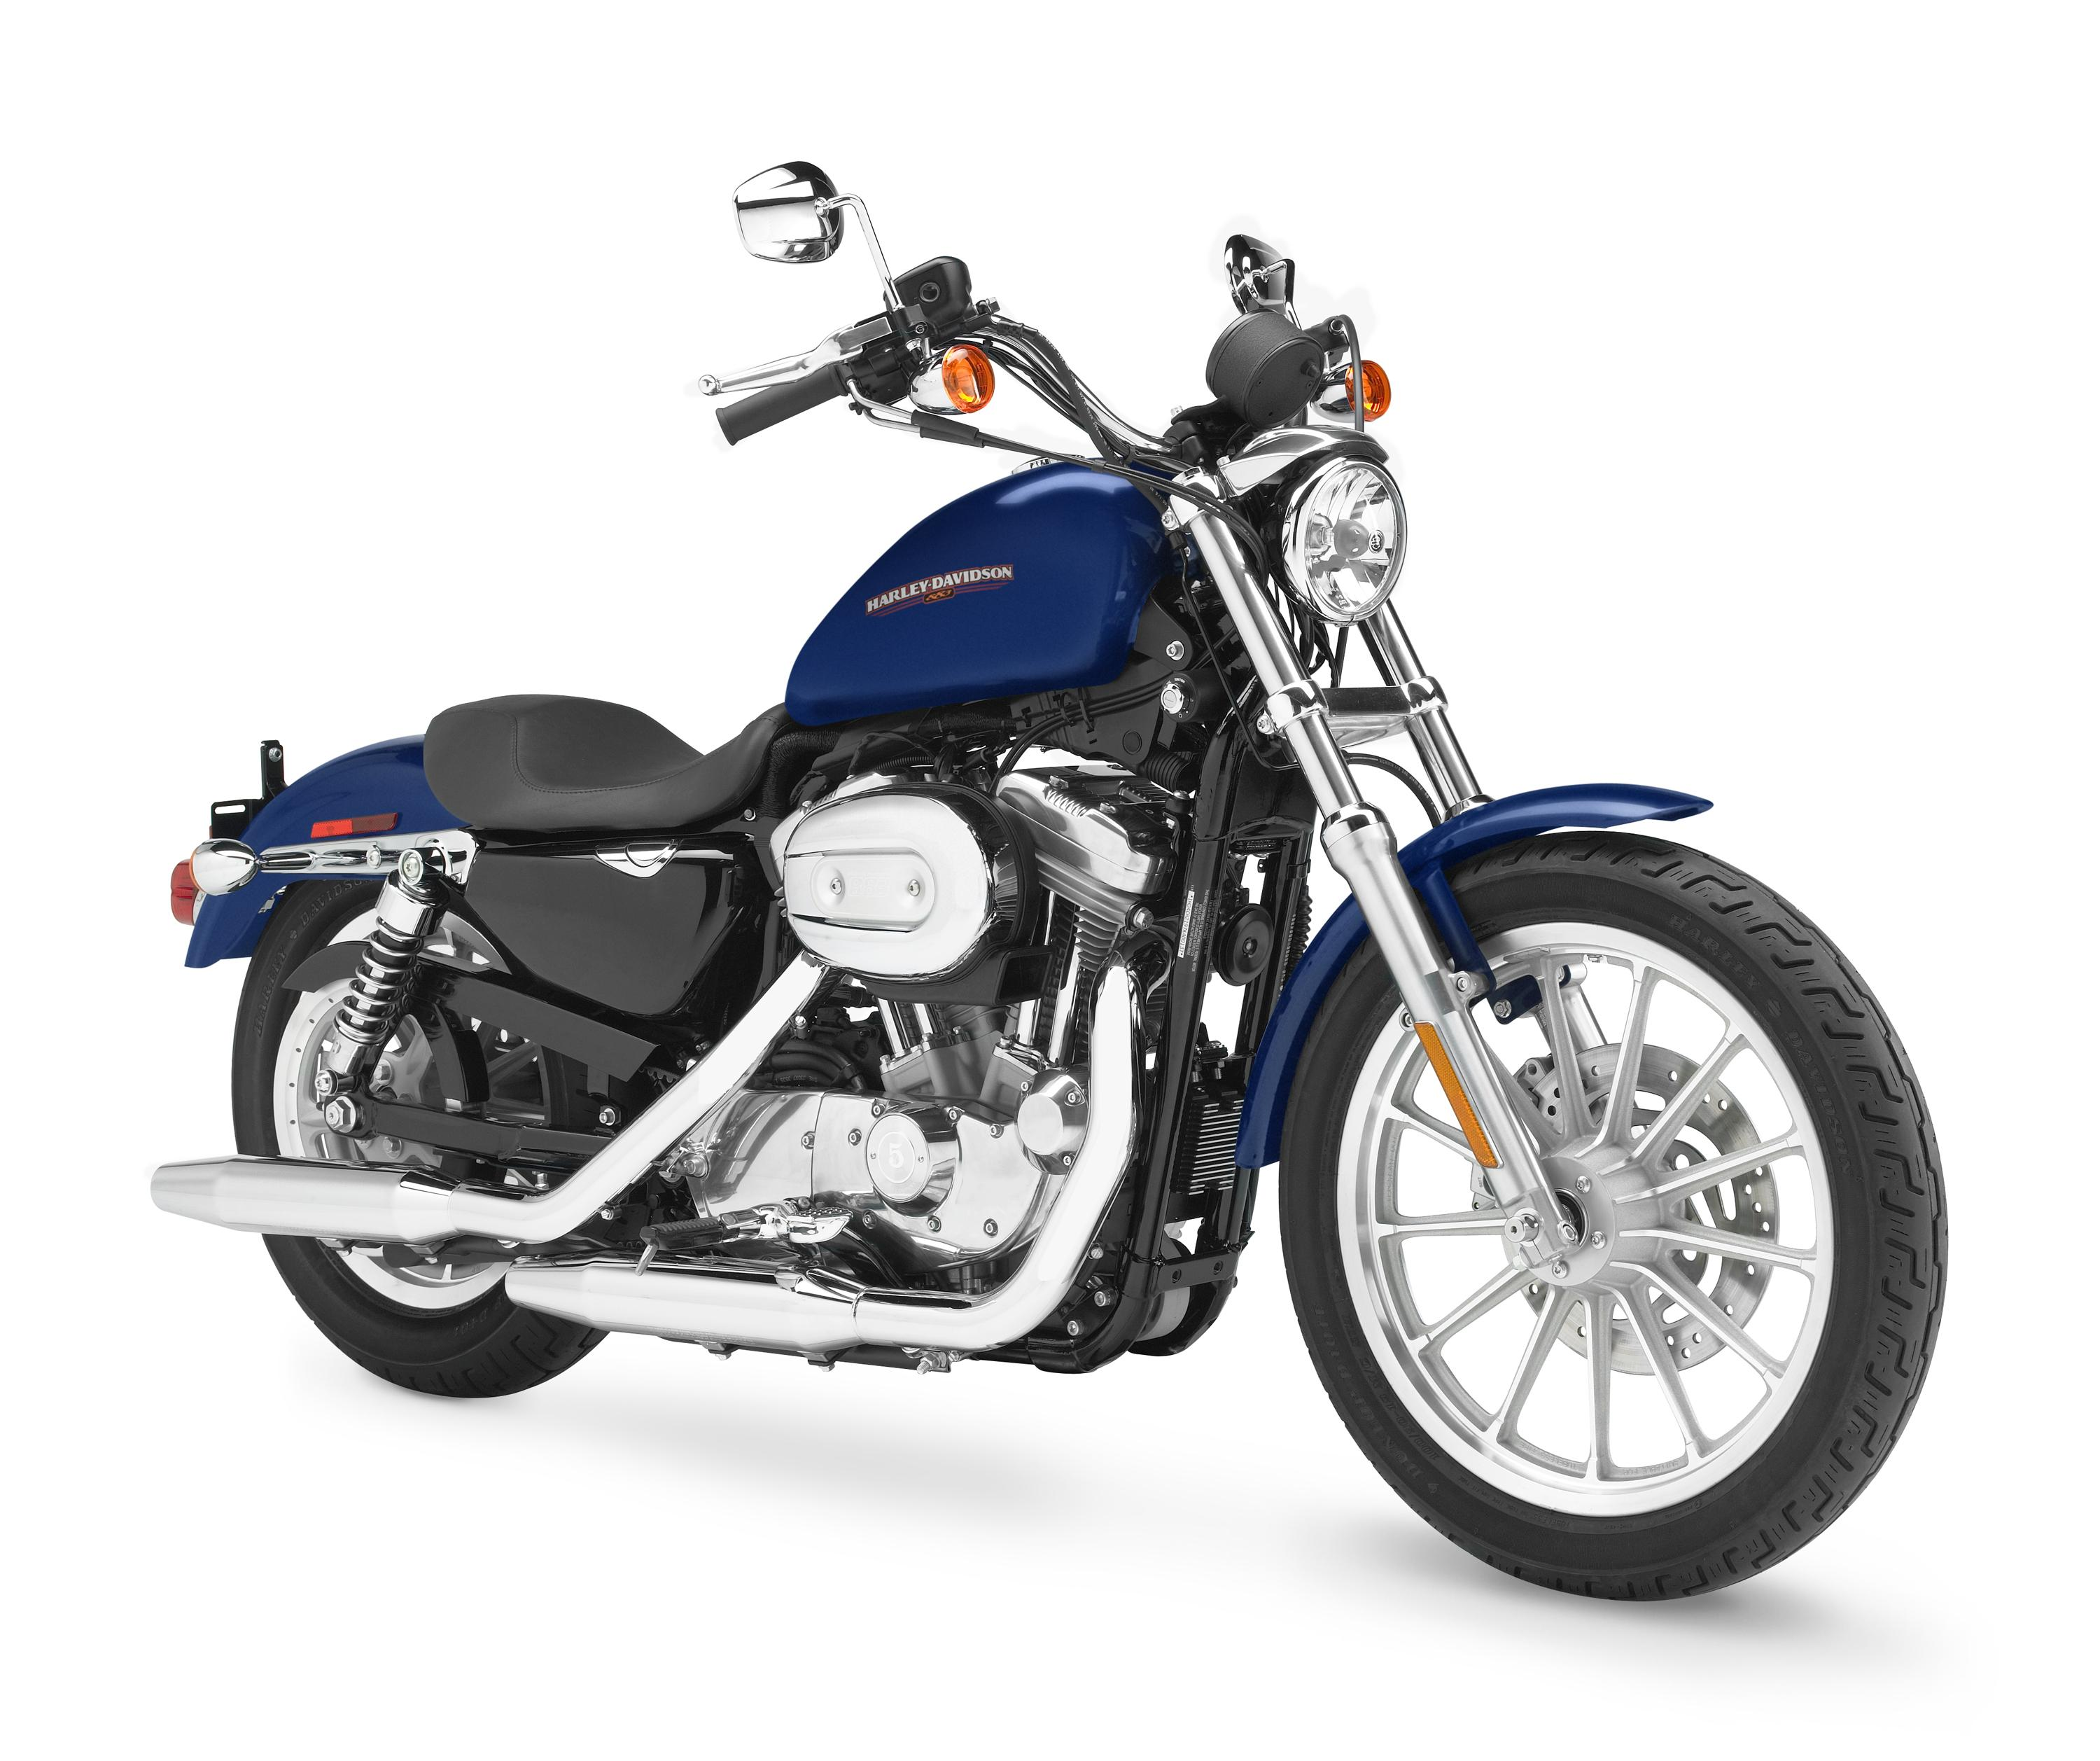 harley davidson xl 883 sportster 883 low review gallery. Black Bedroom Furniture Sets. Home Design Ideas